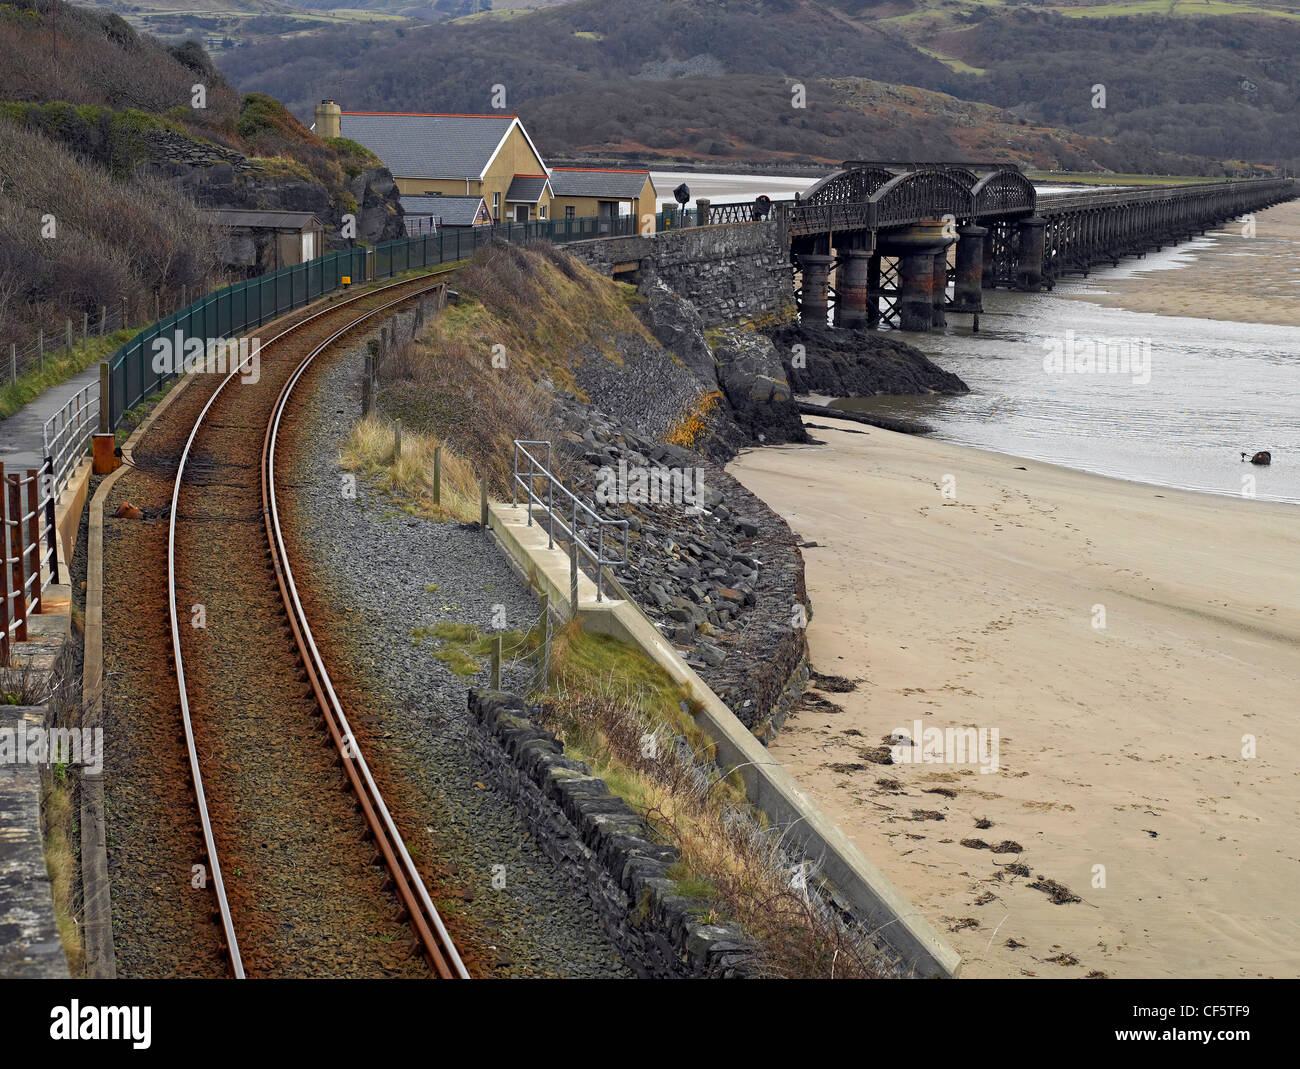 Barmouth Bridge, a single track railway over the estuary of the Afon Mawddach river at low tide. Stock Photo